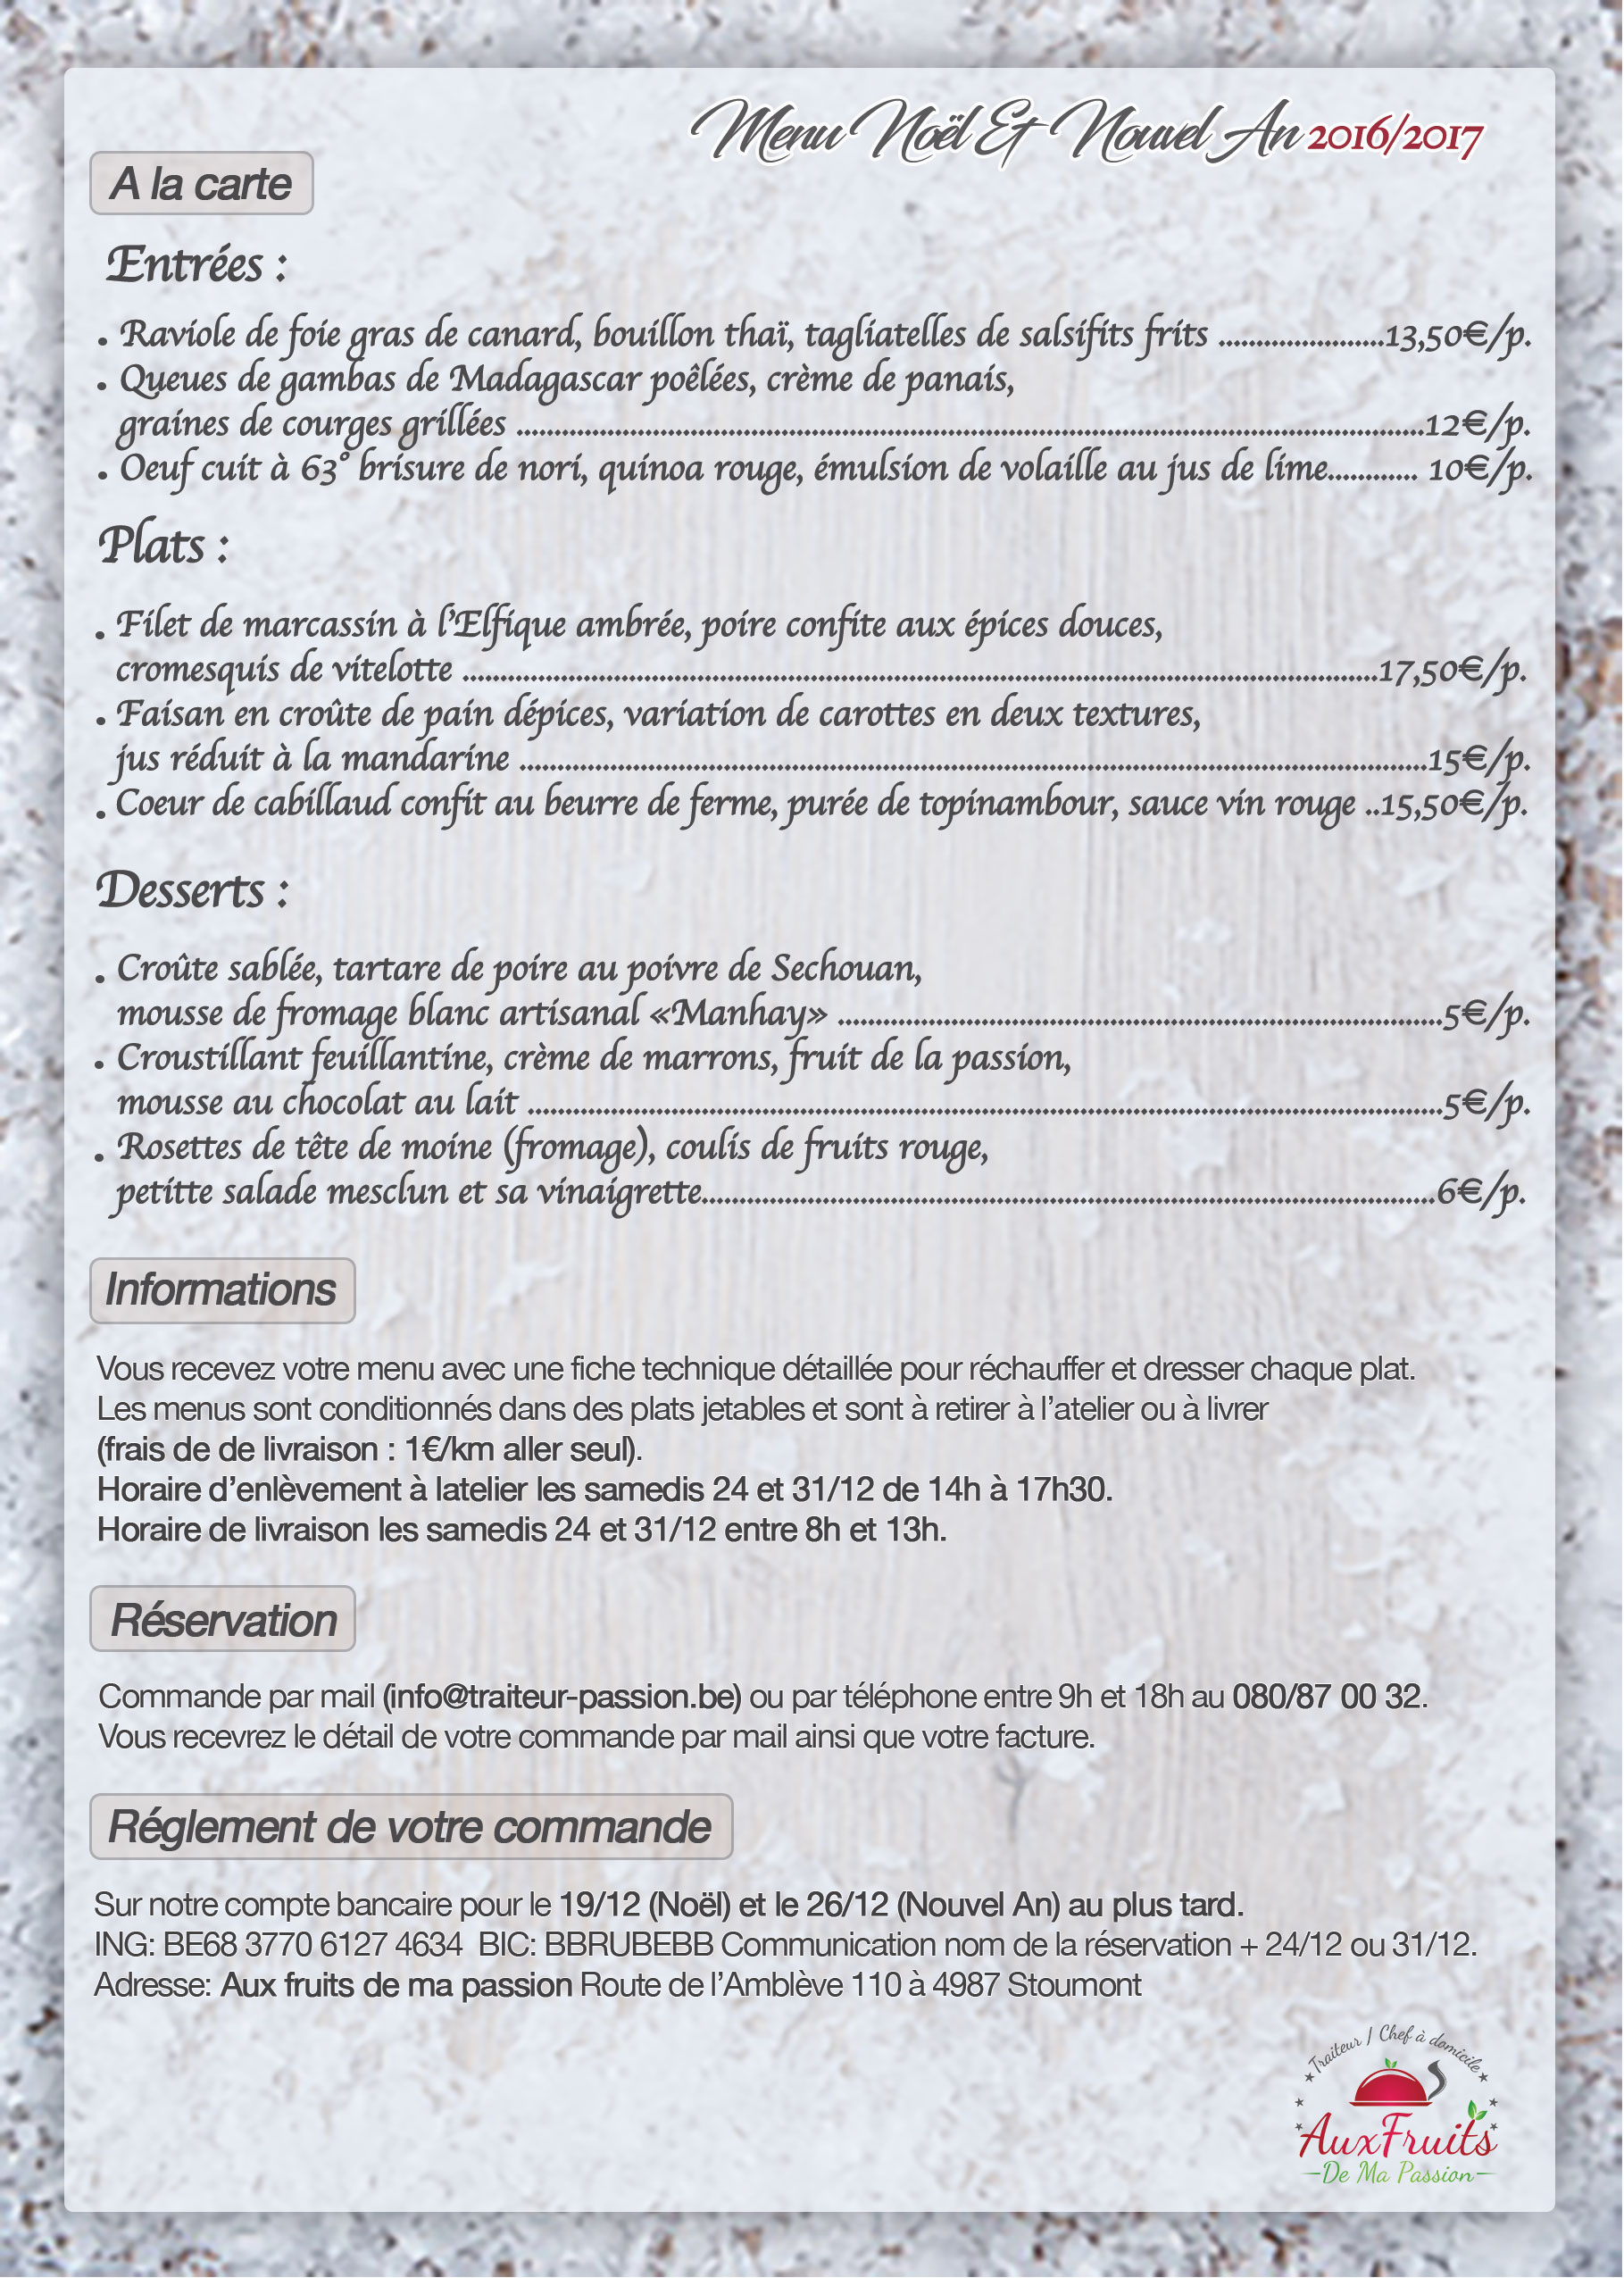 Menu A la Carte - Noël/Nouvel An 2016/2017